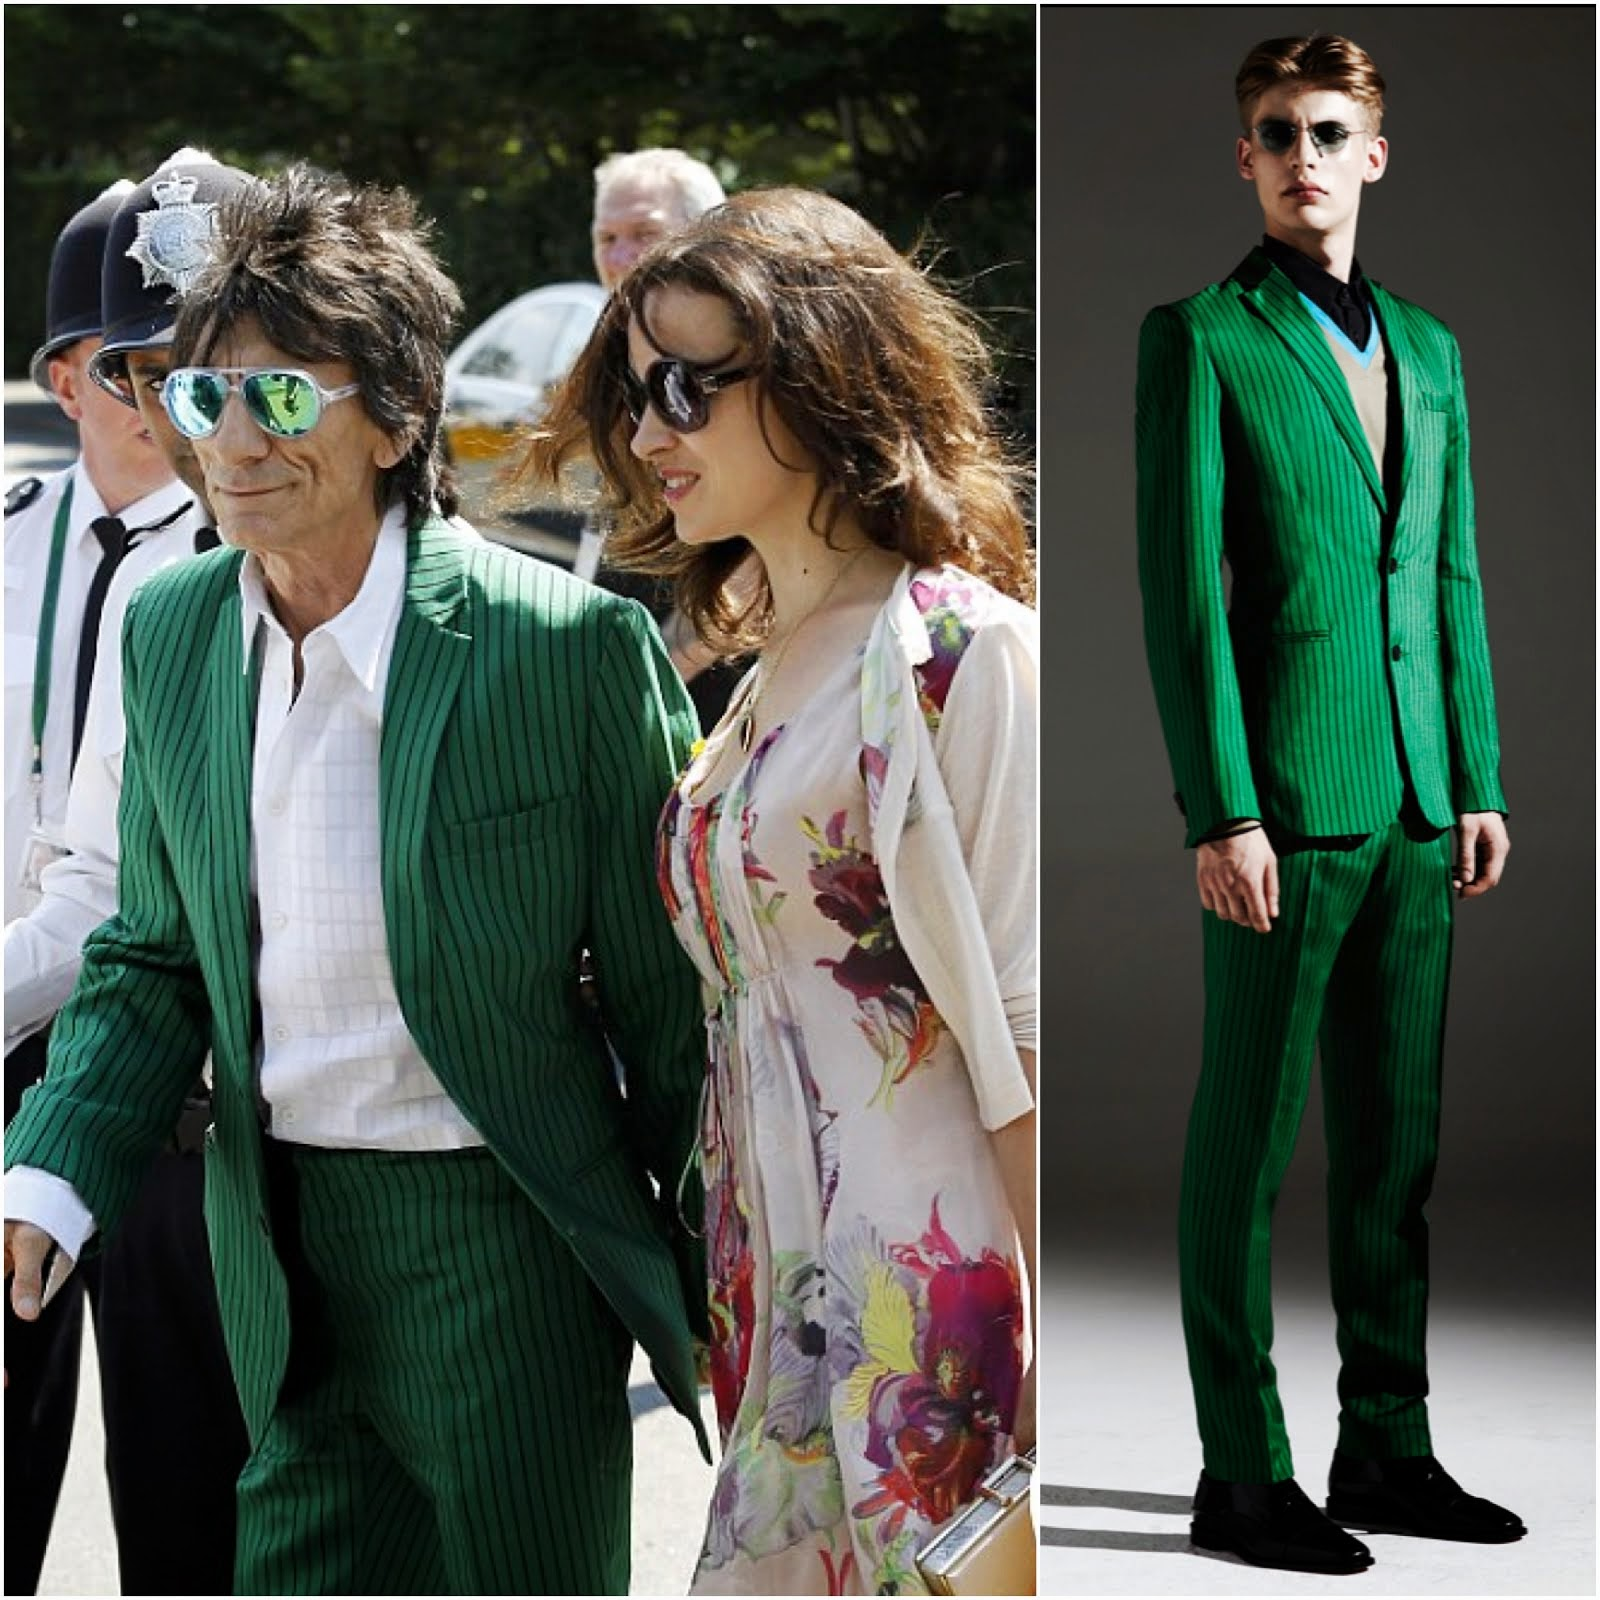 00O00 Menswear Blog: Ronnie Wood in Jonathan Saunders green striped suit and Ray-Ban transparent clear aviators with green reflective mirror lens - Wimbledon 2013 Finals